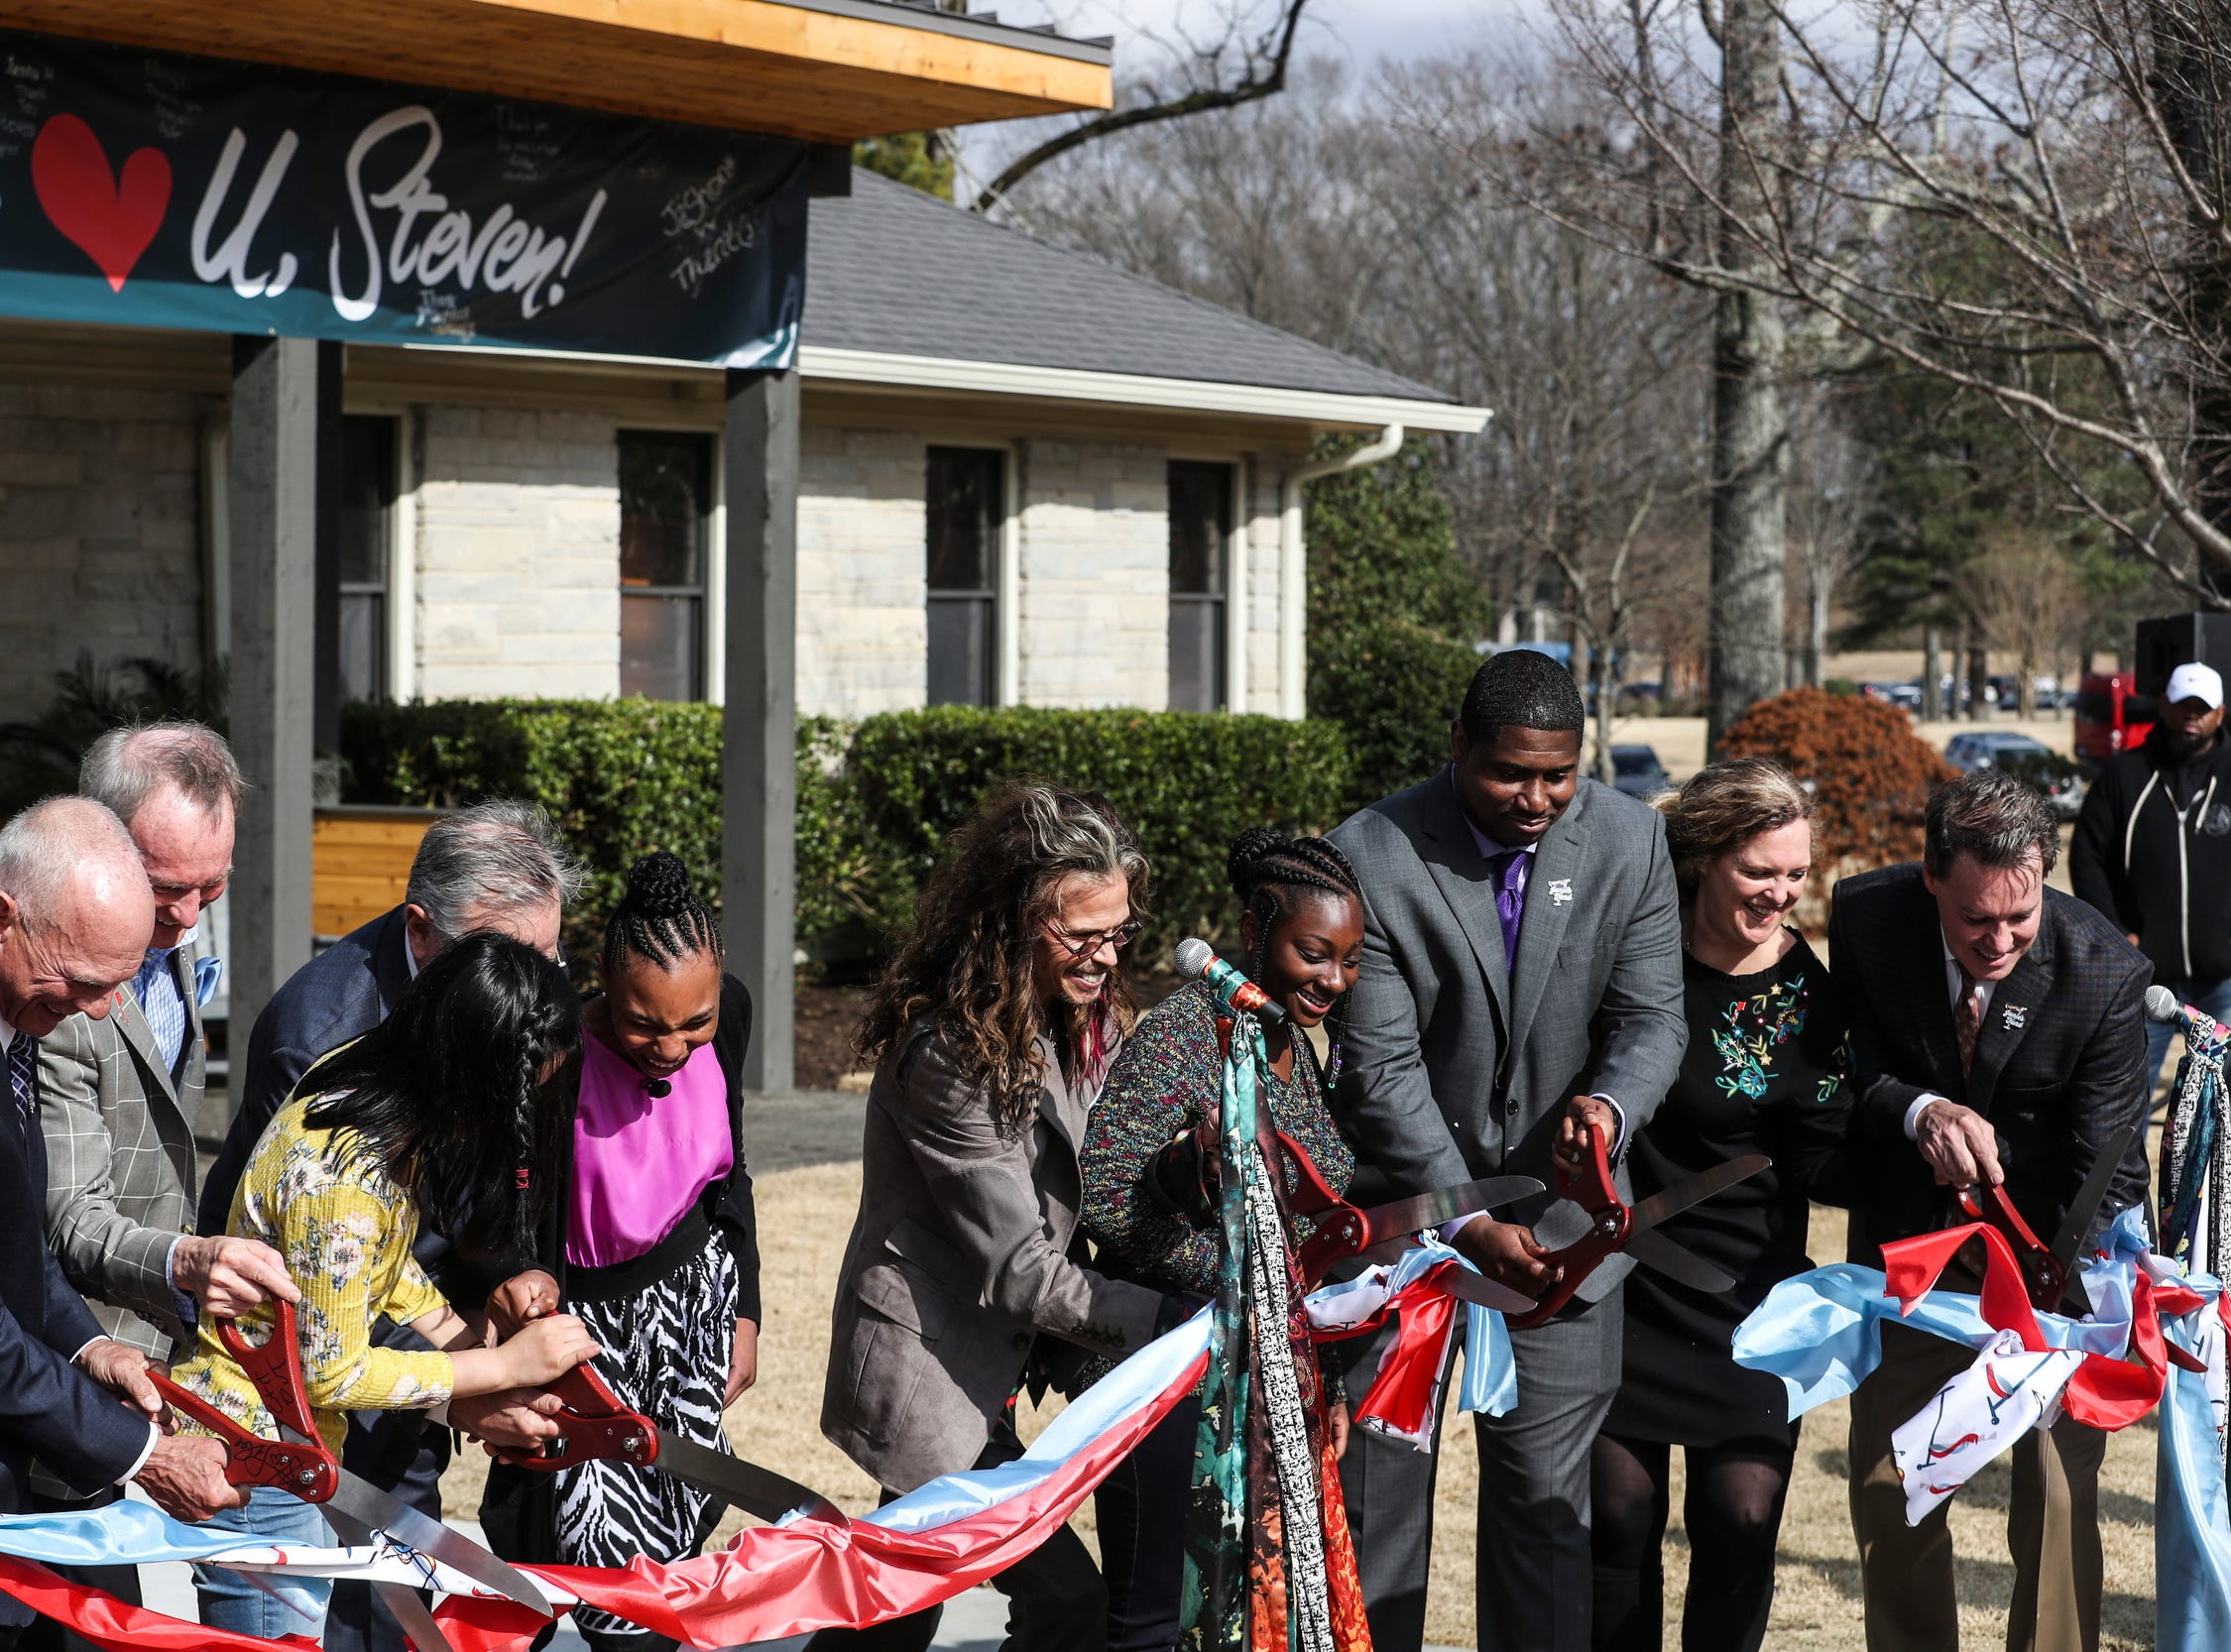 February 04 2019 - Scenes from the scarf-cutting celebration at Janie's House at Youth Villages in Bartlett. Janie's Fund paid for the renovations of the existing home for girls and Youth Villages renamed it a Janie's House.